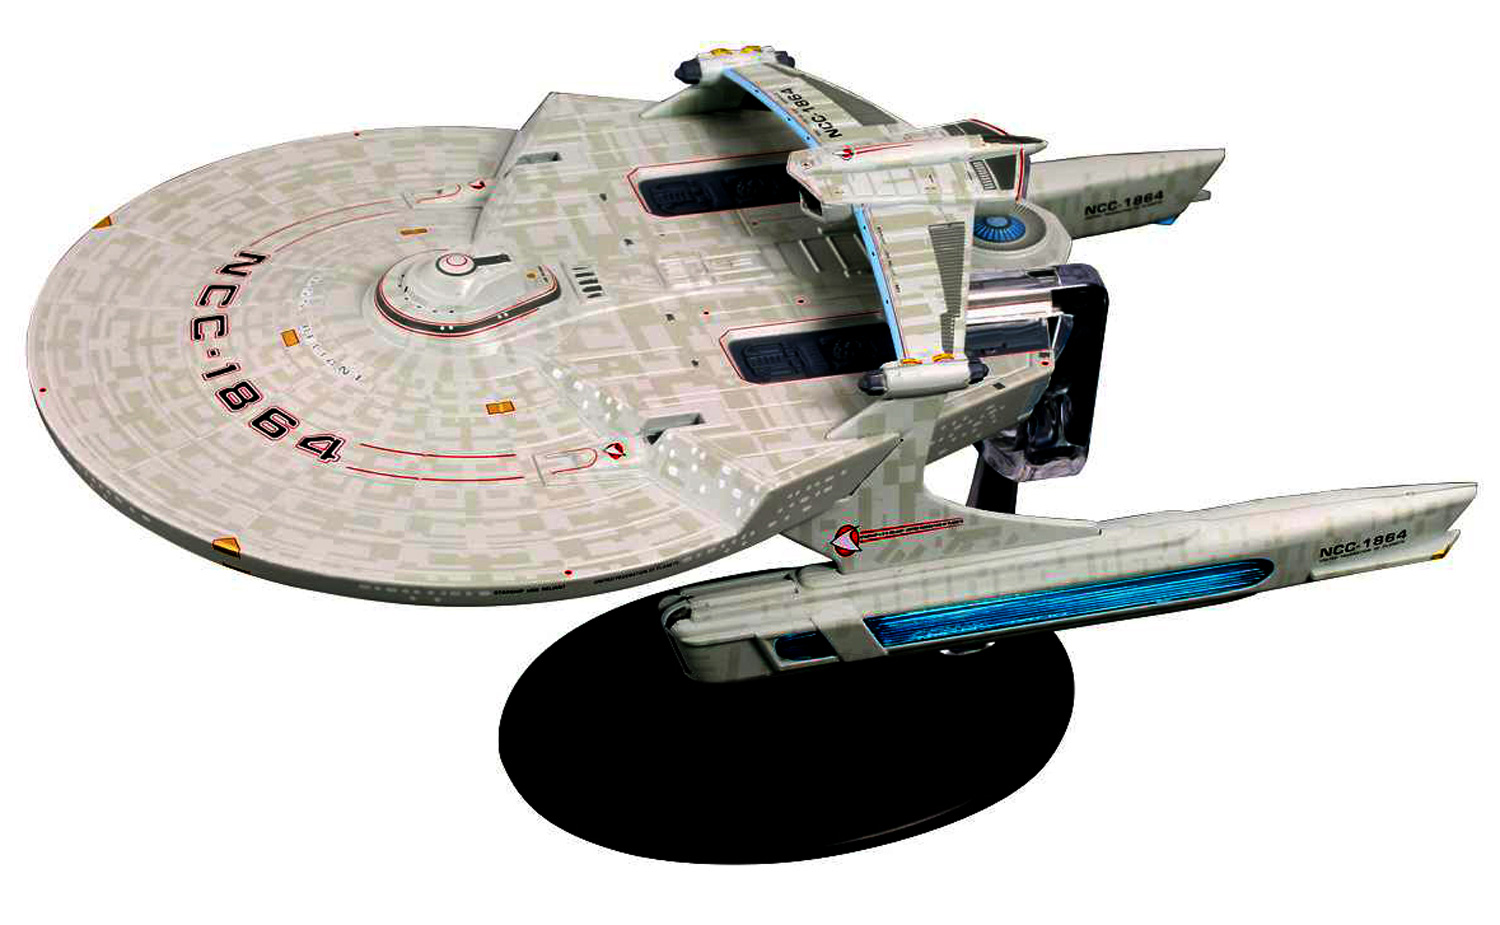 Image: Star Trek Official Starships Collection Special: U.S.S. Reliant NCC-1864 #26 - Eaglemoss Publications Ltd